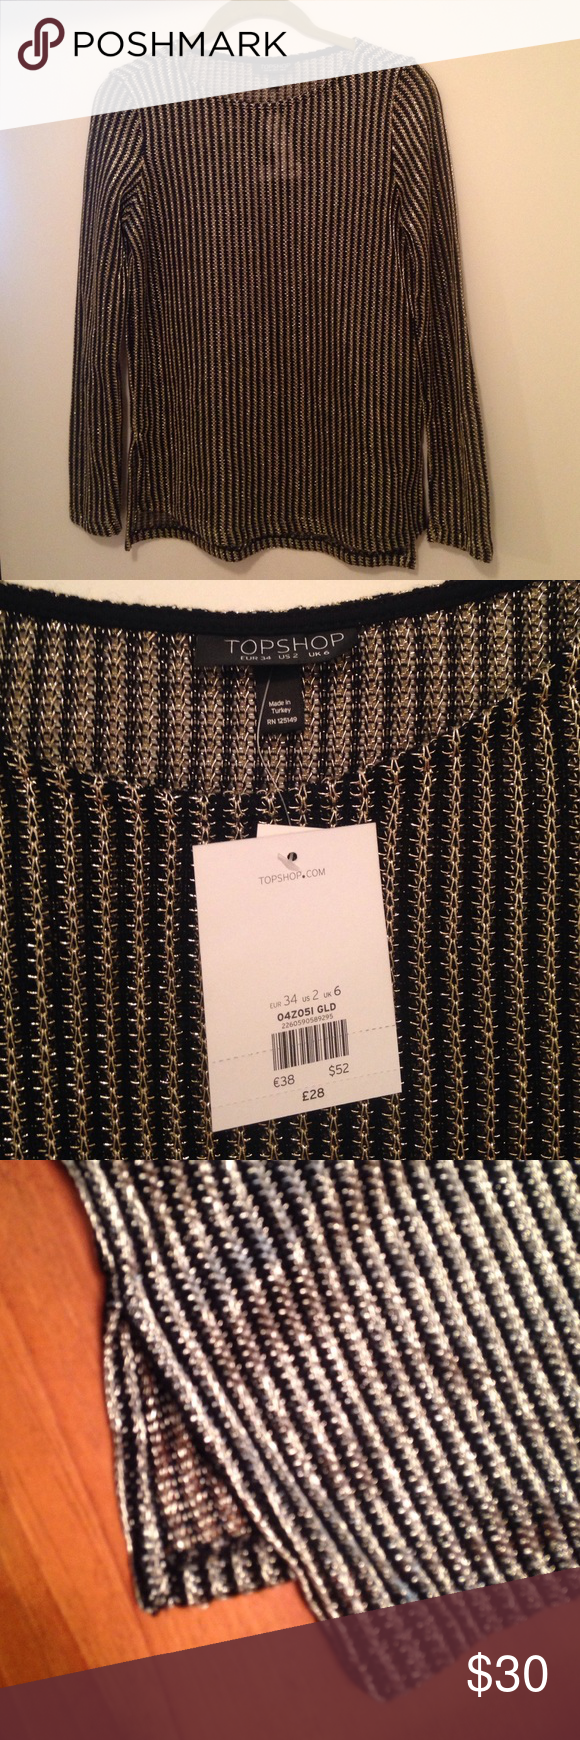 Topshop Black and Gold top NWT size 2 Black and gold chain mail top by topshop. NWT! Looks super cute over a black or nude bralette and features slits on the sides.  Size 2 which fits and XS/S. Offers are welcome! Topshop Tops